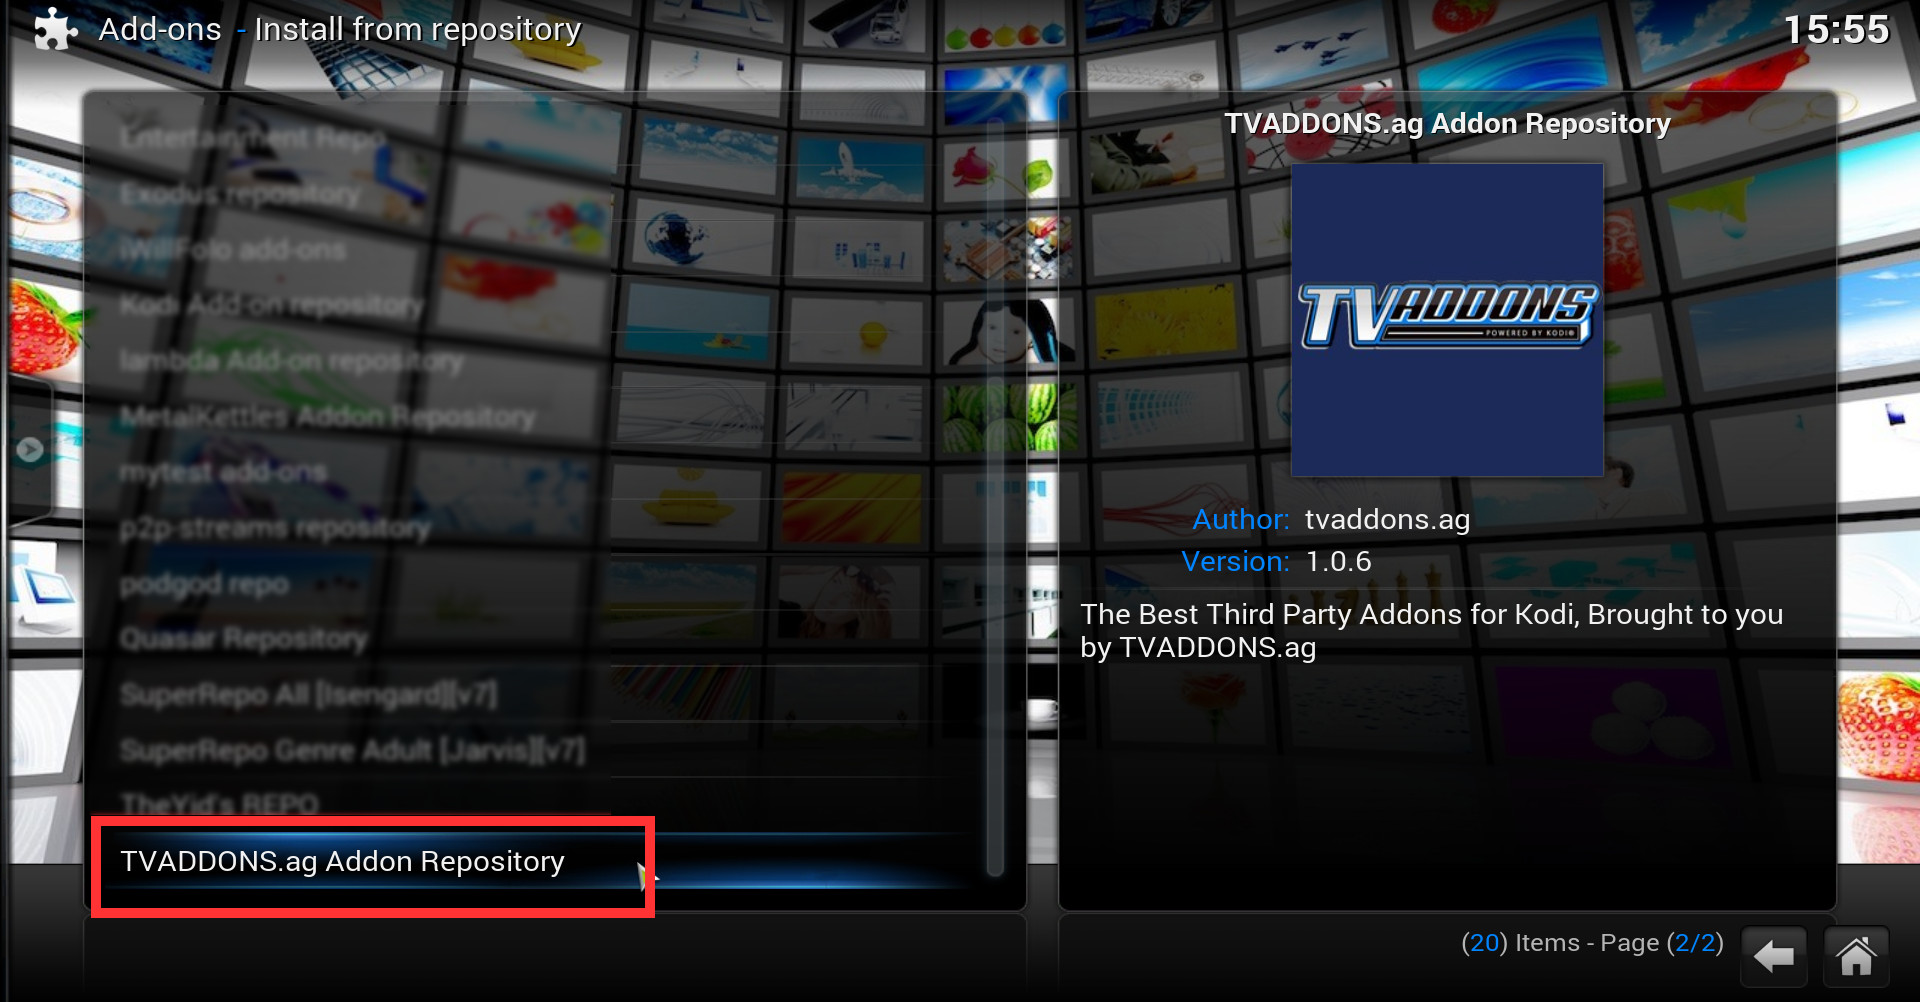 How To Install TVaddons Kodi Repository (With Screenshots